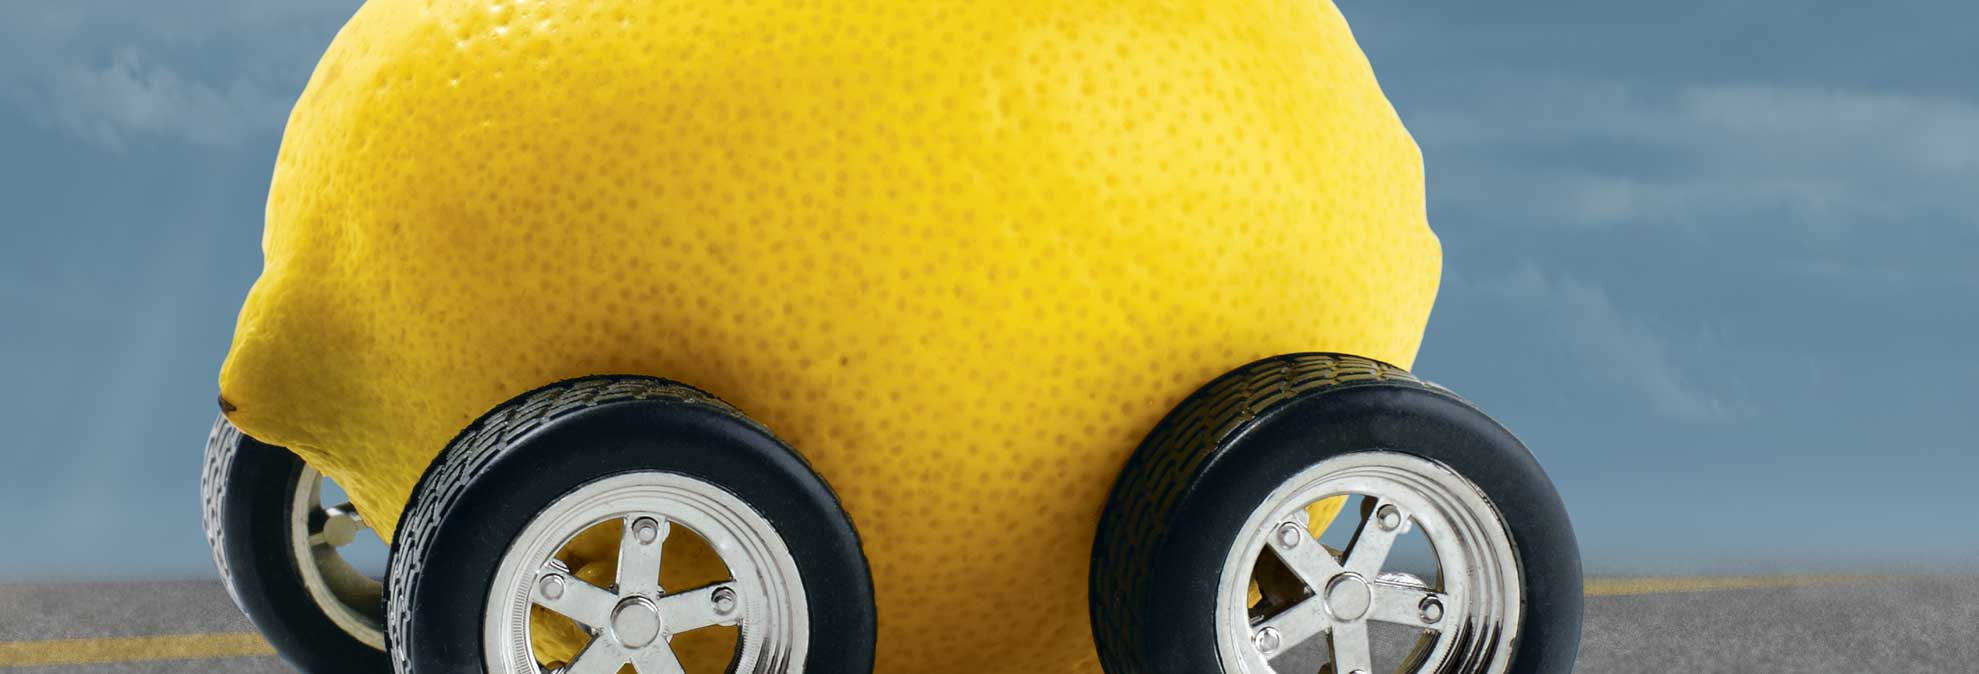 Consumer Reports:  How to Avoid Buying a Lemon Car